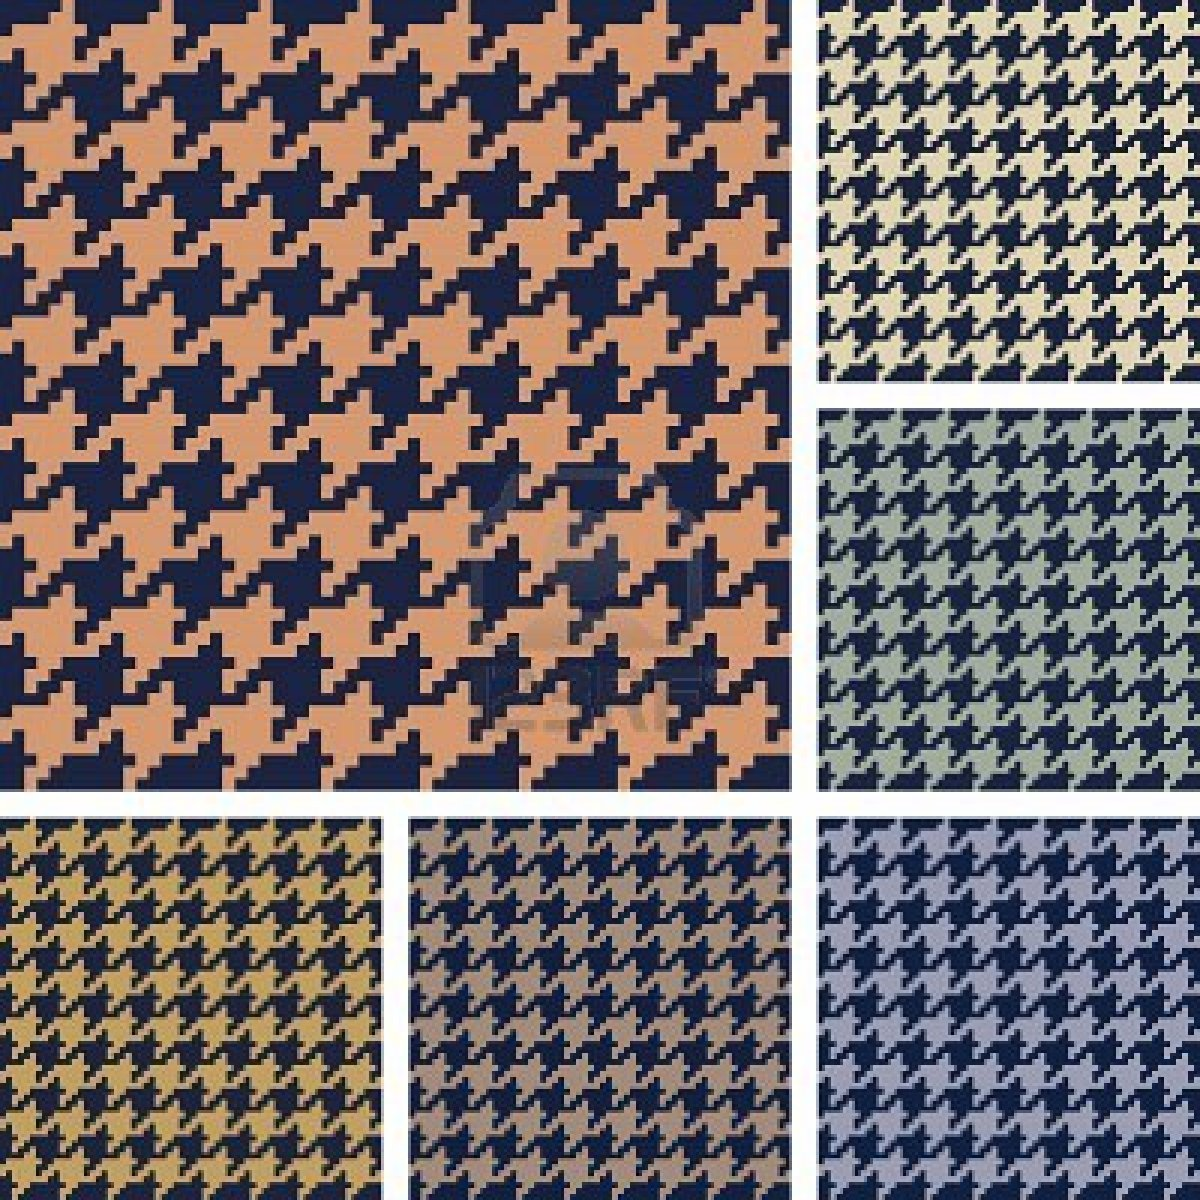 wpid-6689566-set-of-houndstooth-pattern-2011-11-28-07-01.jpg